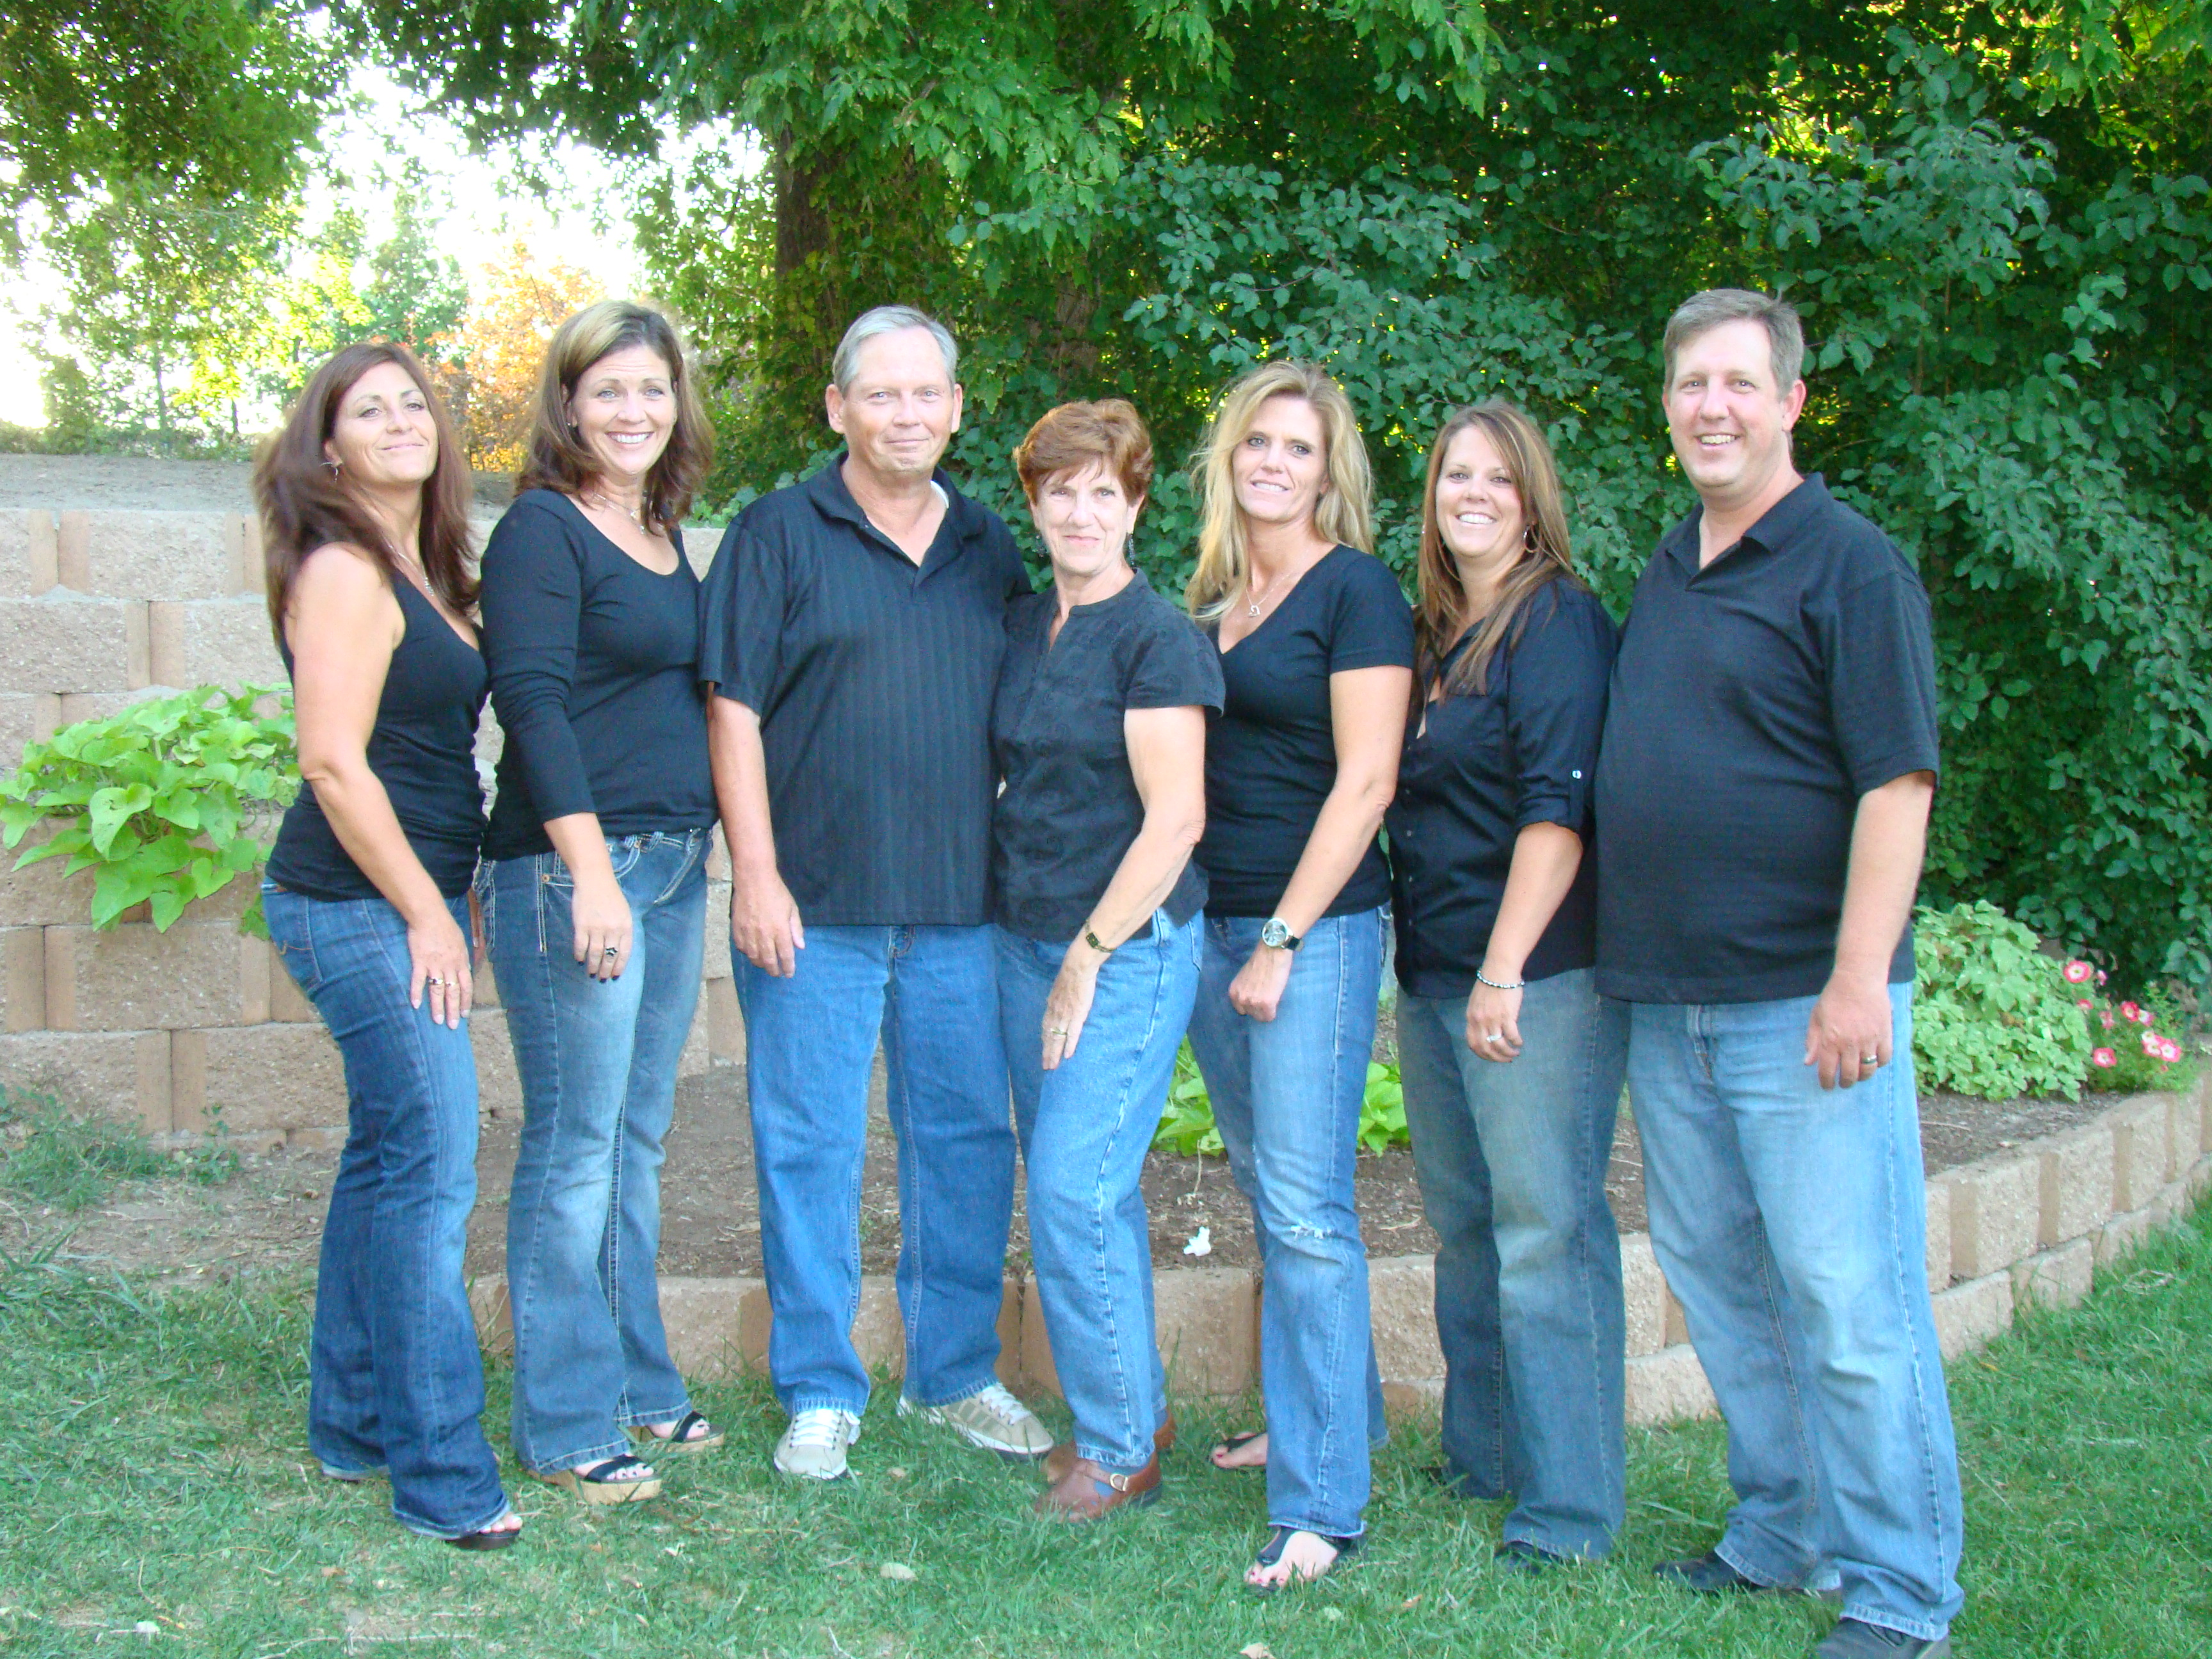 The Sheehan Clan.....Kimberly, Heidi, Kerm, Earlynn, Shelly, Jenny and Troy